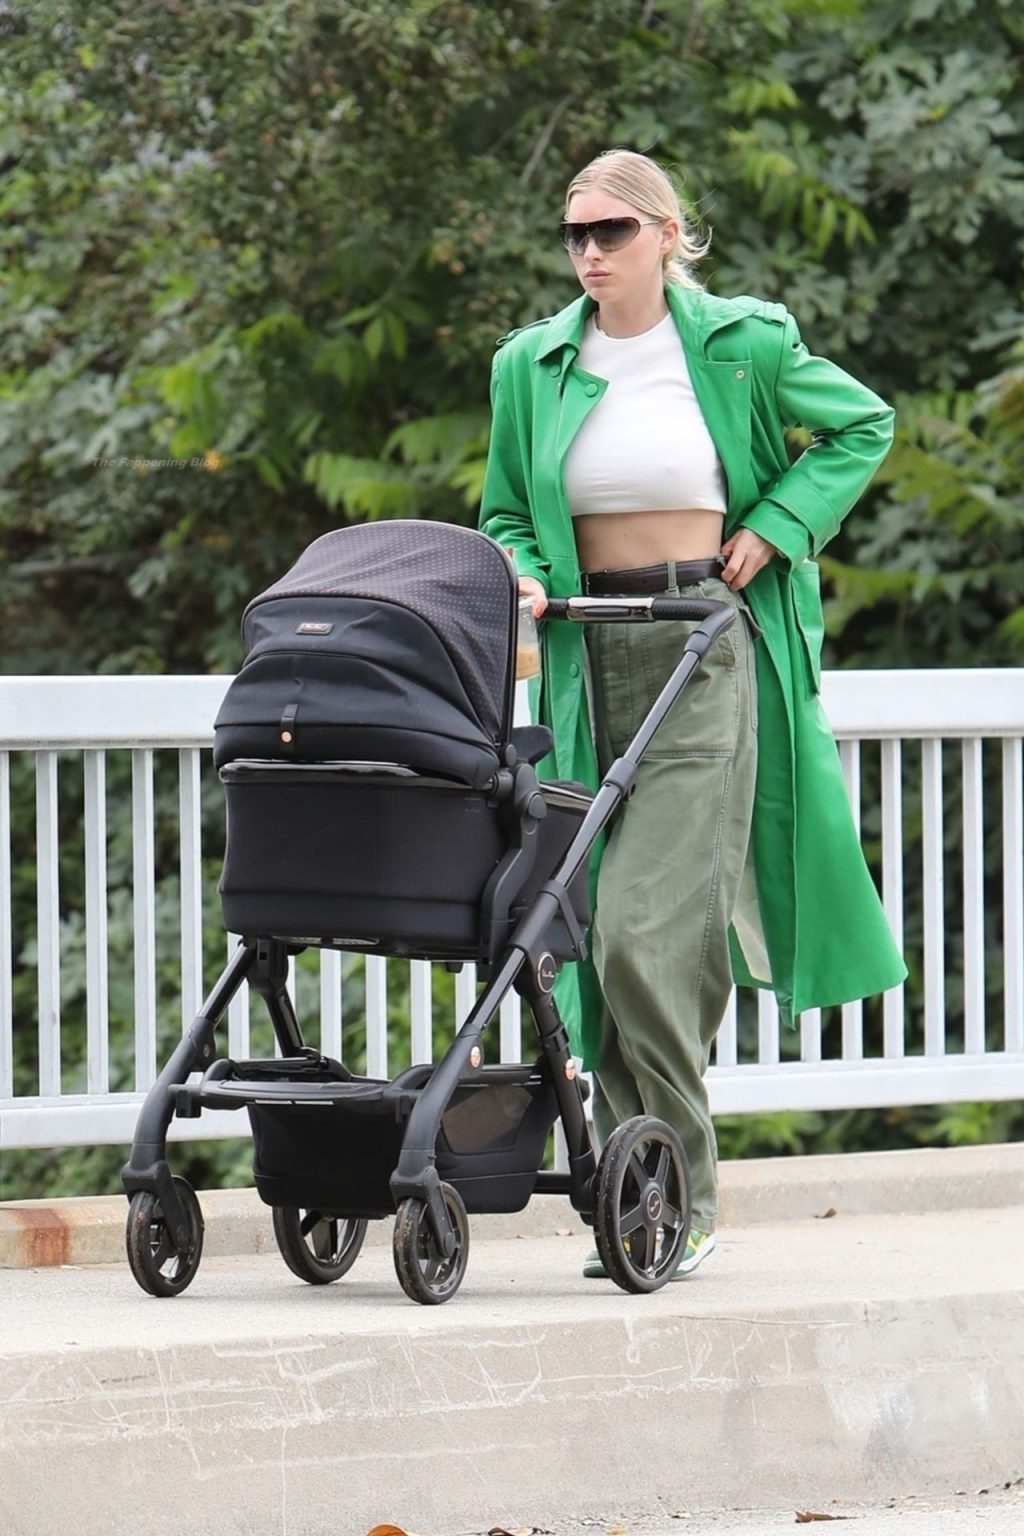 Elsa Hosk Rocks a Crop Top and Puts Her Abs on Display while on a Coffee Run in LA (23 Photos)